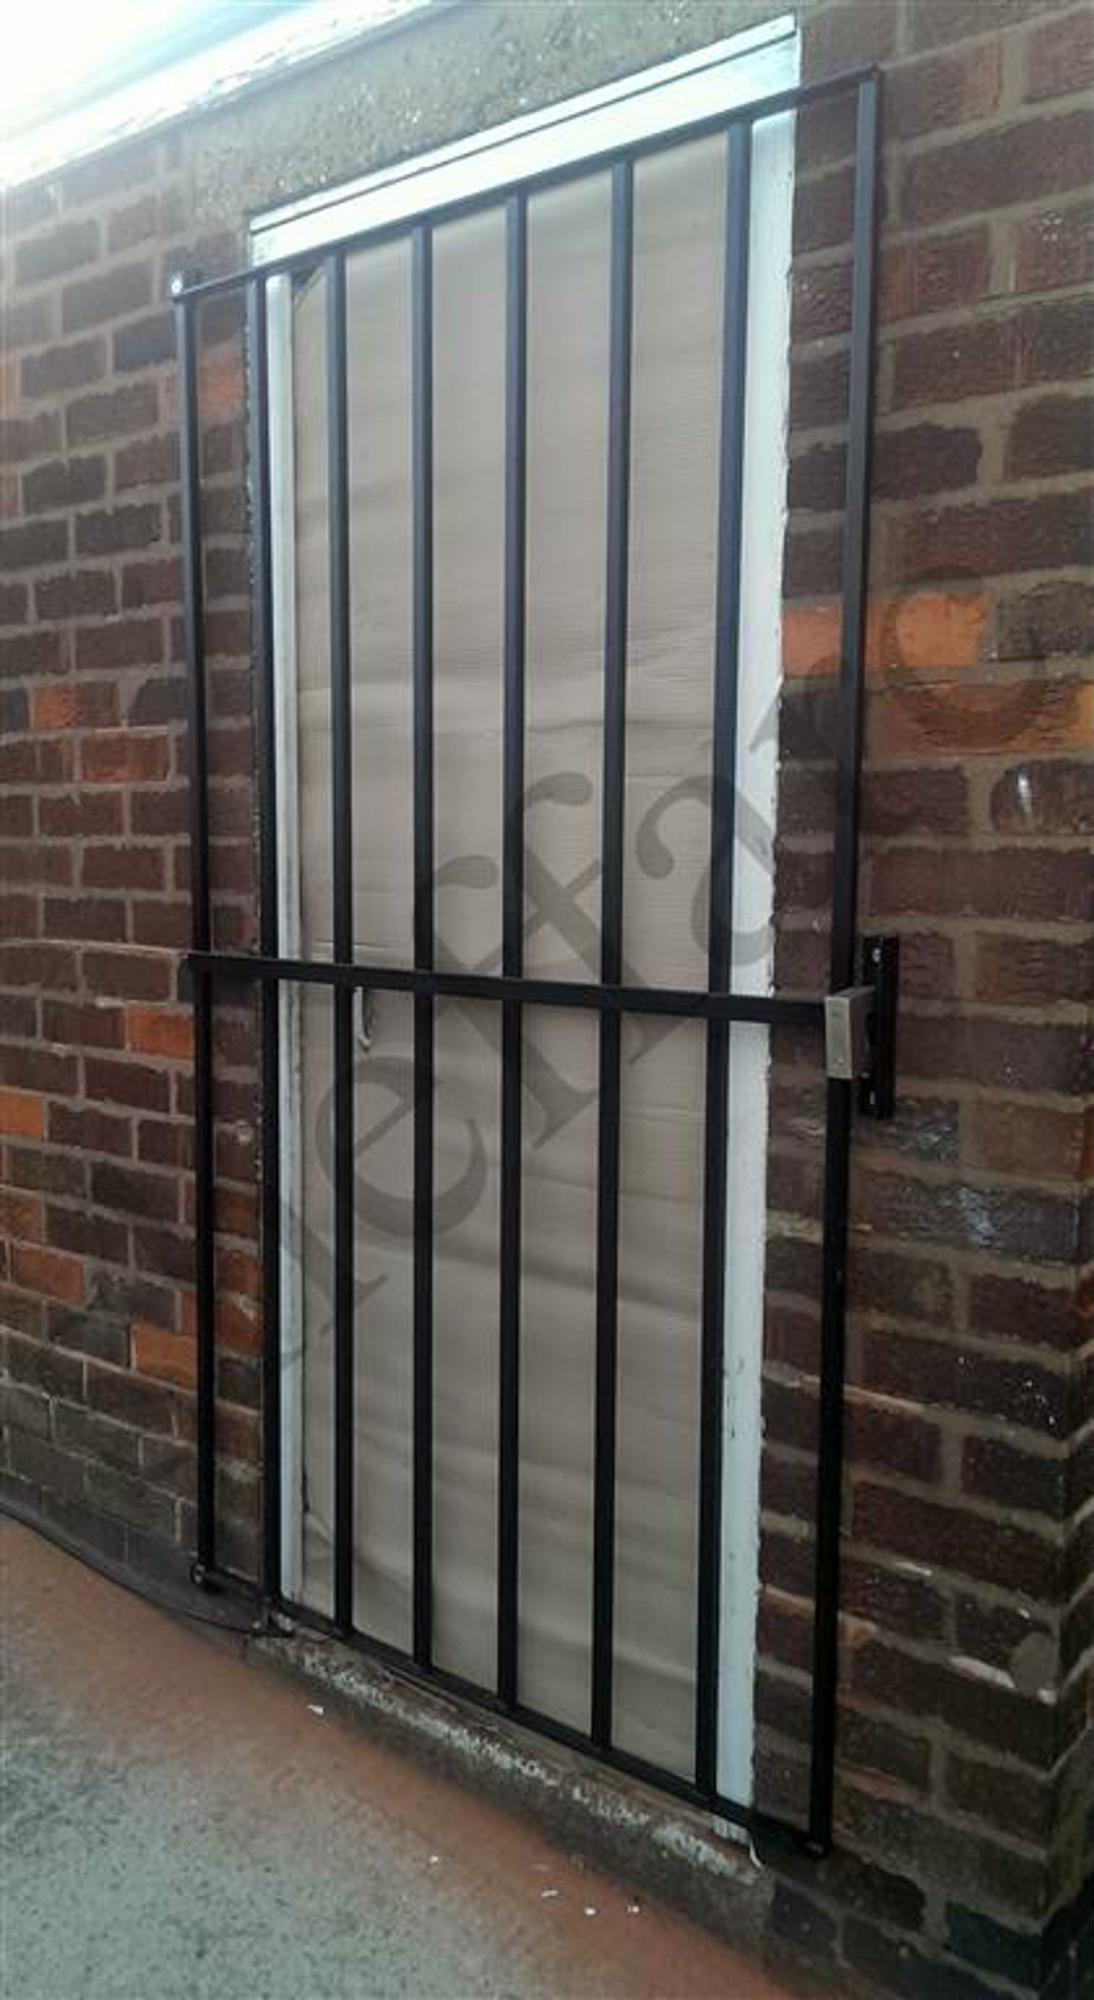 steel door security grille gate for home office or garage sheffield architectural metalworkers. Black Bedroom Furniture Sets. Home Design Ideas